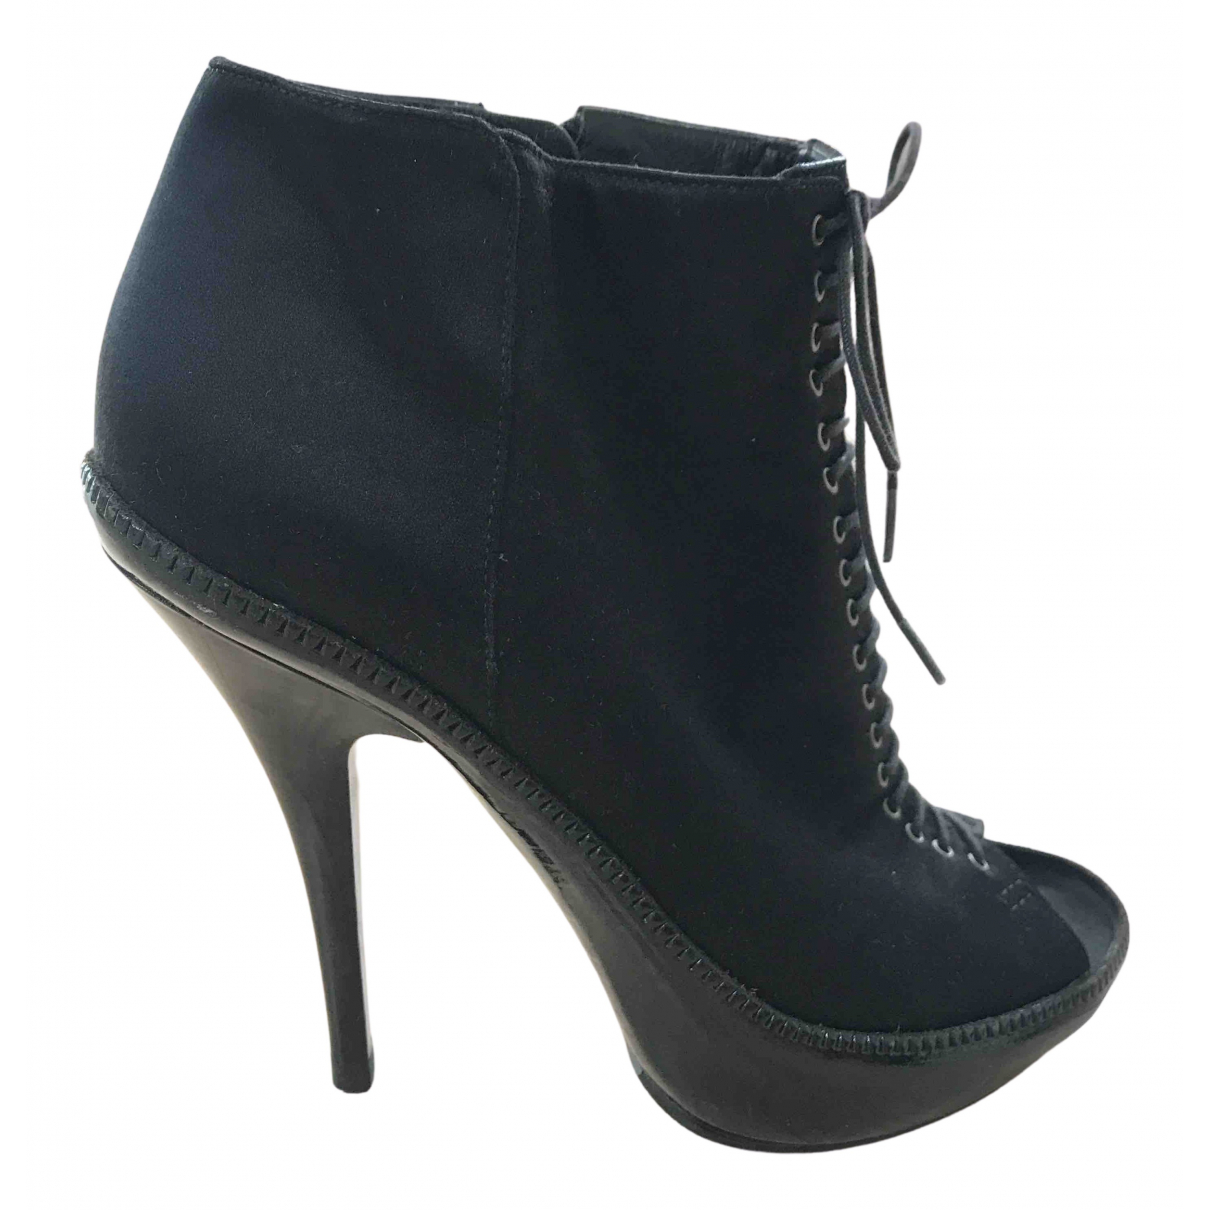 Givenchy N Black Cloth Ankle boots for Women 37.5 EU